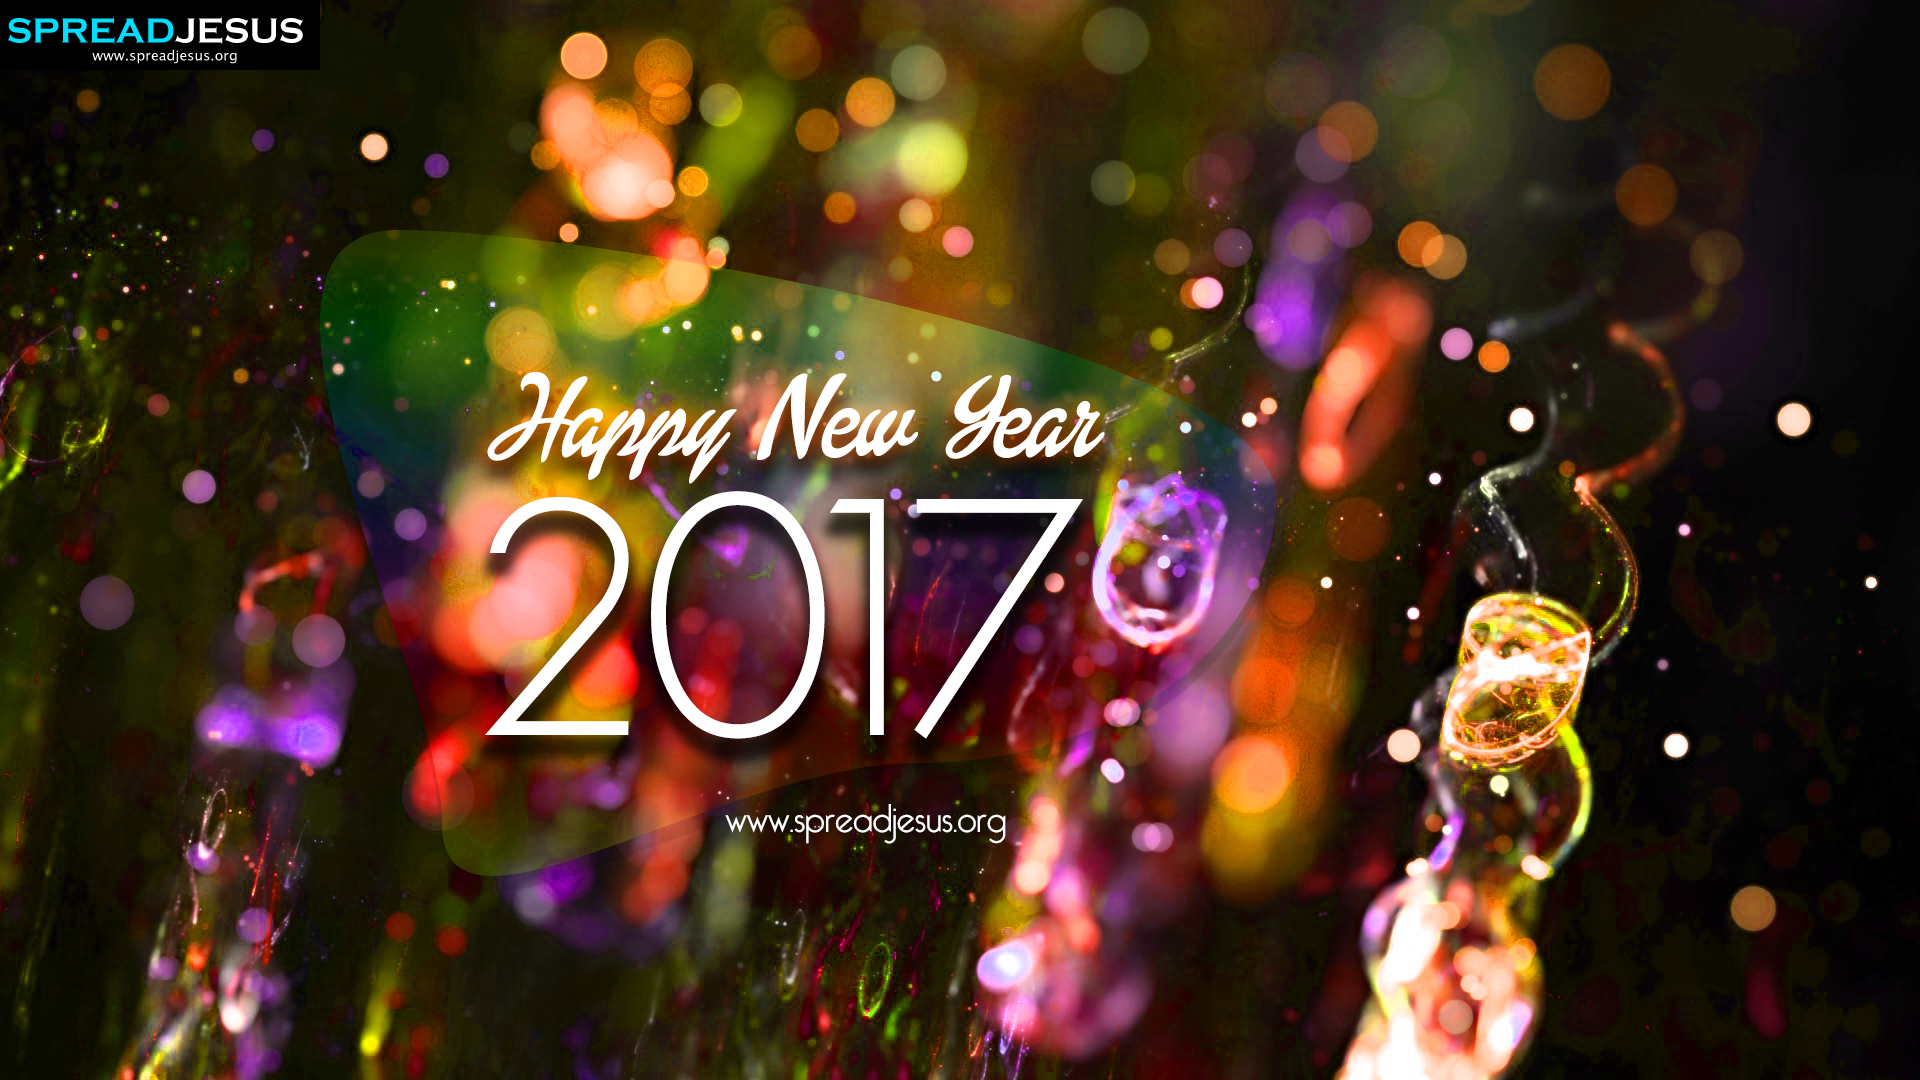 New Year 2017 Hd Wallpaper: Happy New Year 2017 HD-Wallpapers 2017 New Year Latest Images